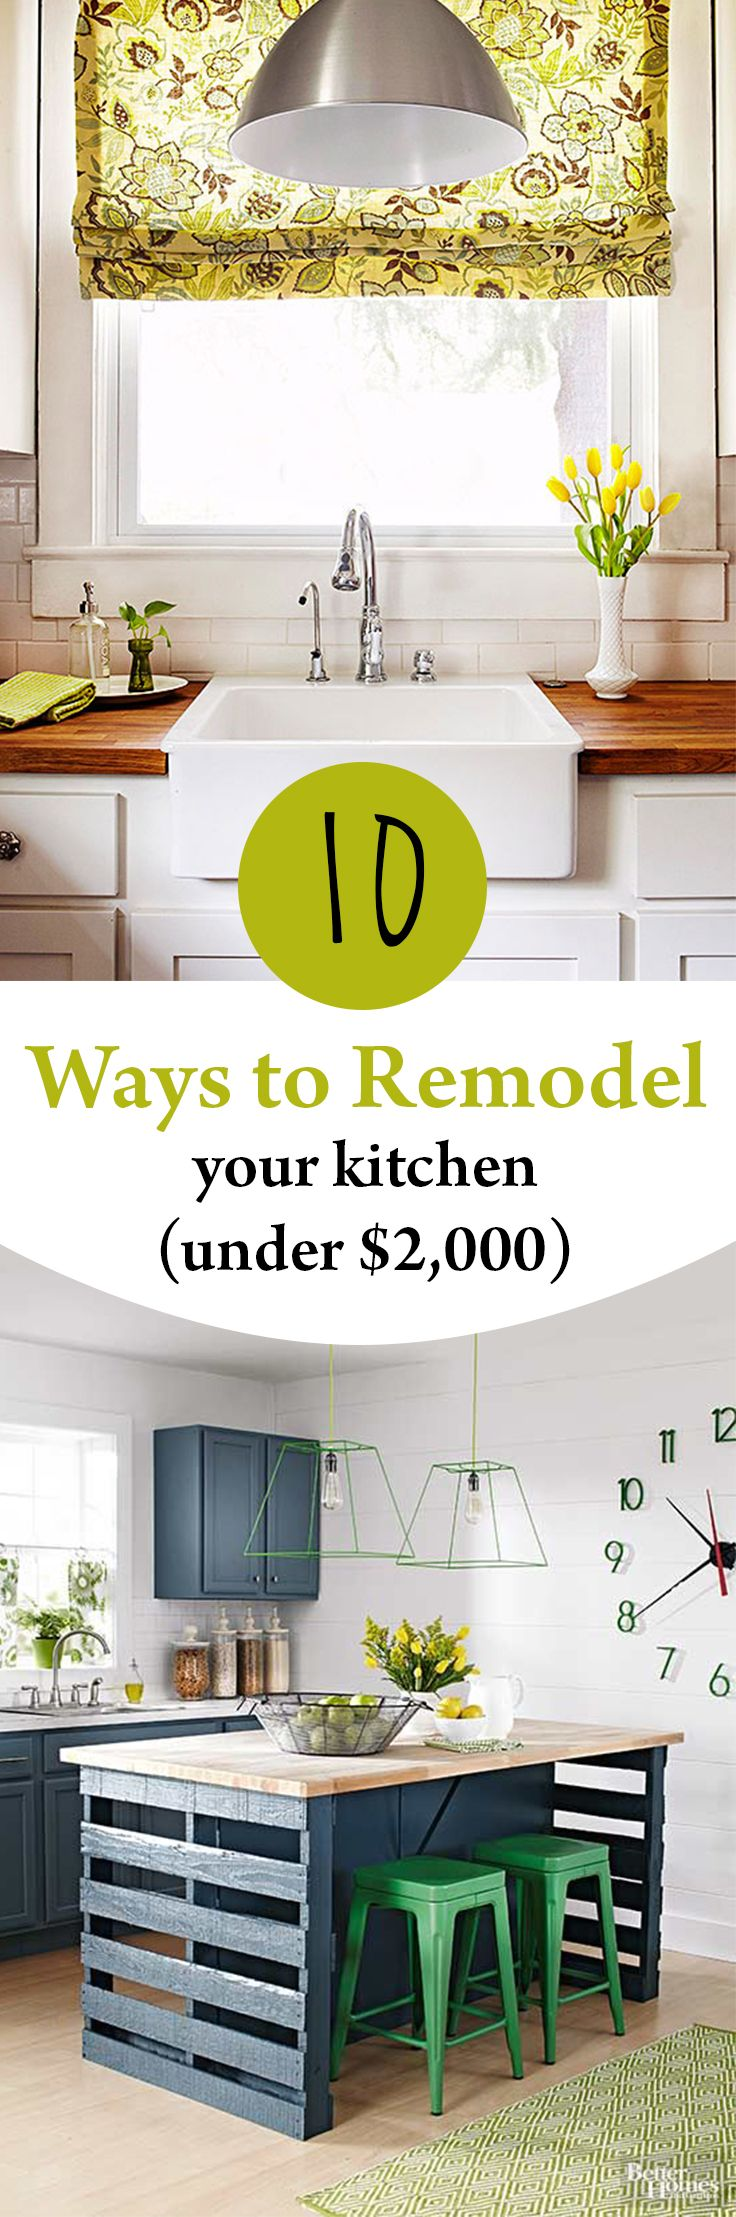 nice Cheapest Way To Remodel Kitchen #5: Top 25 ideas about Cheap Kitchen Remodel on Pinterest | Budget kitchen  remodel, Update kitchen cabinets and Cheap kitchen makeover